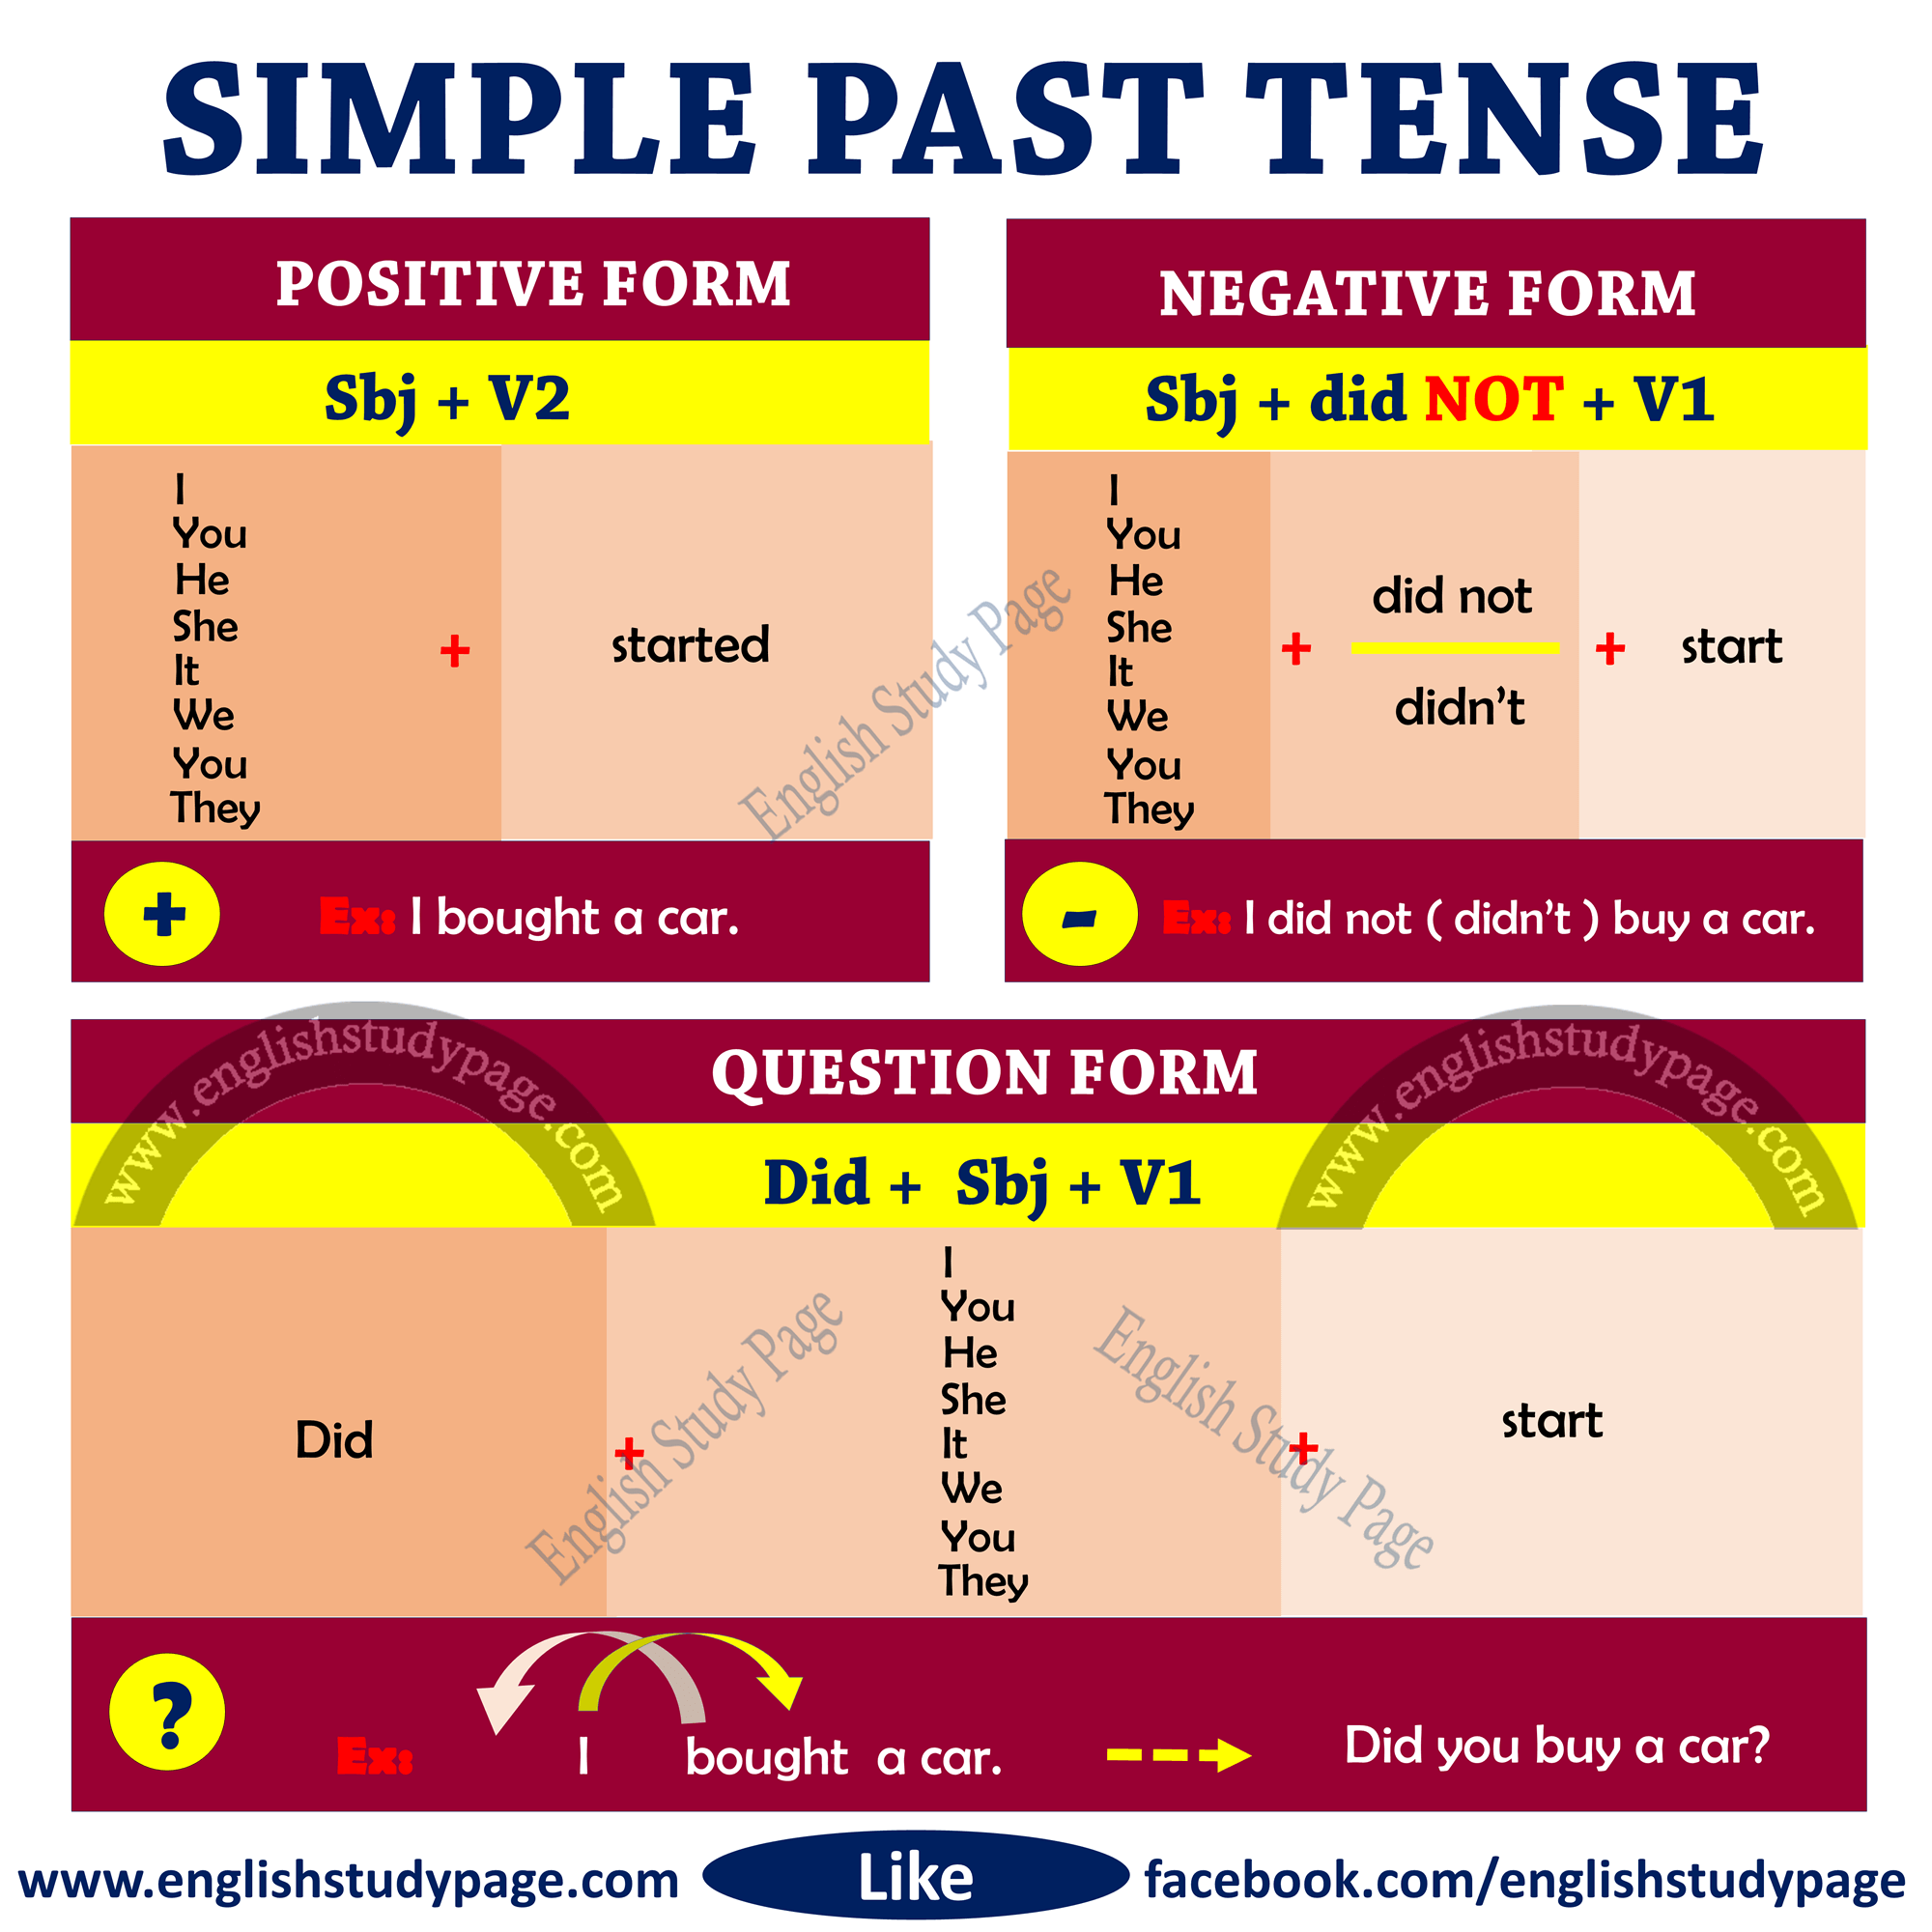 Simple Past Tense This Post Includes Detailed Expressions